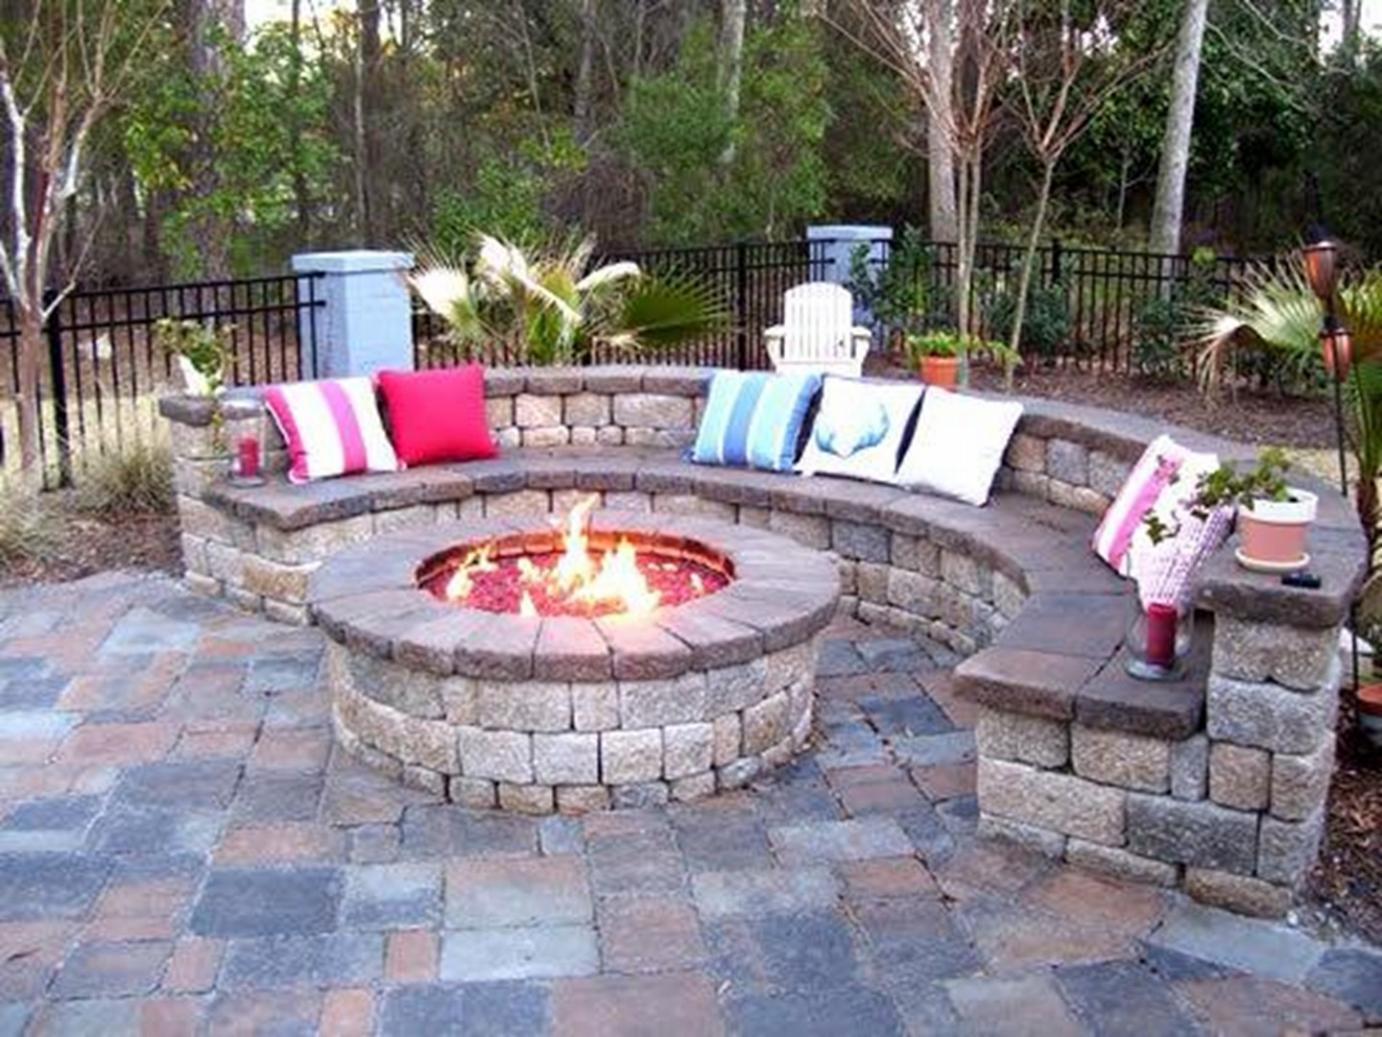 Delicieux Backyard Fire Pit Ideas Backyard Fire Pit Design ...